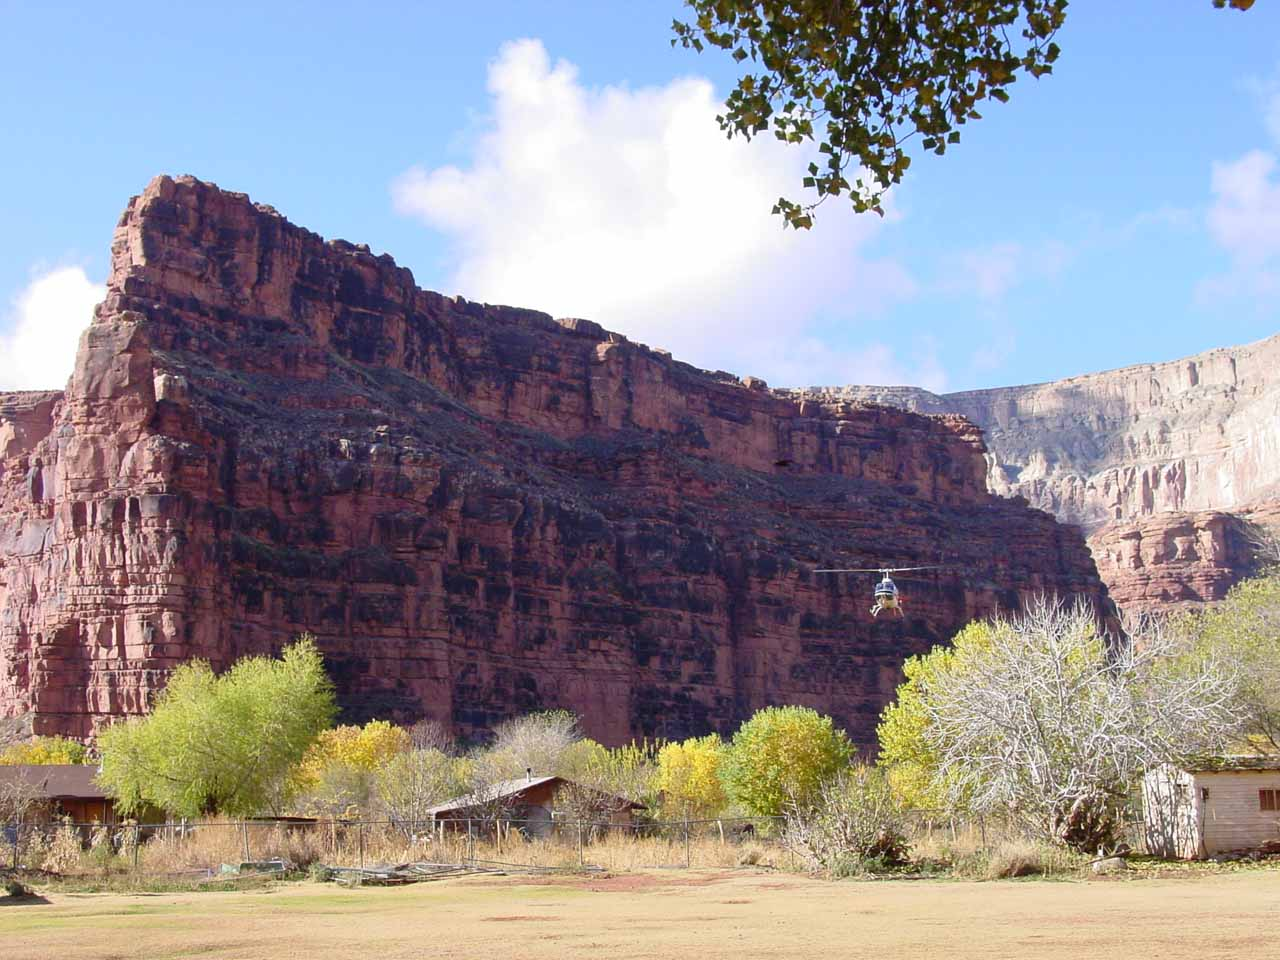 Helicopter about to land in Supai Village